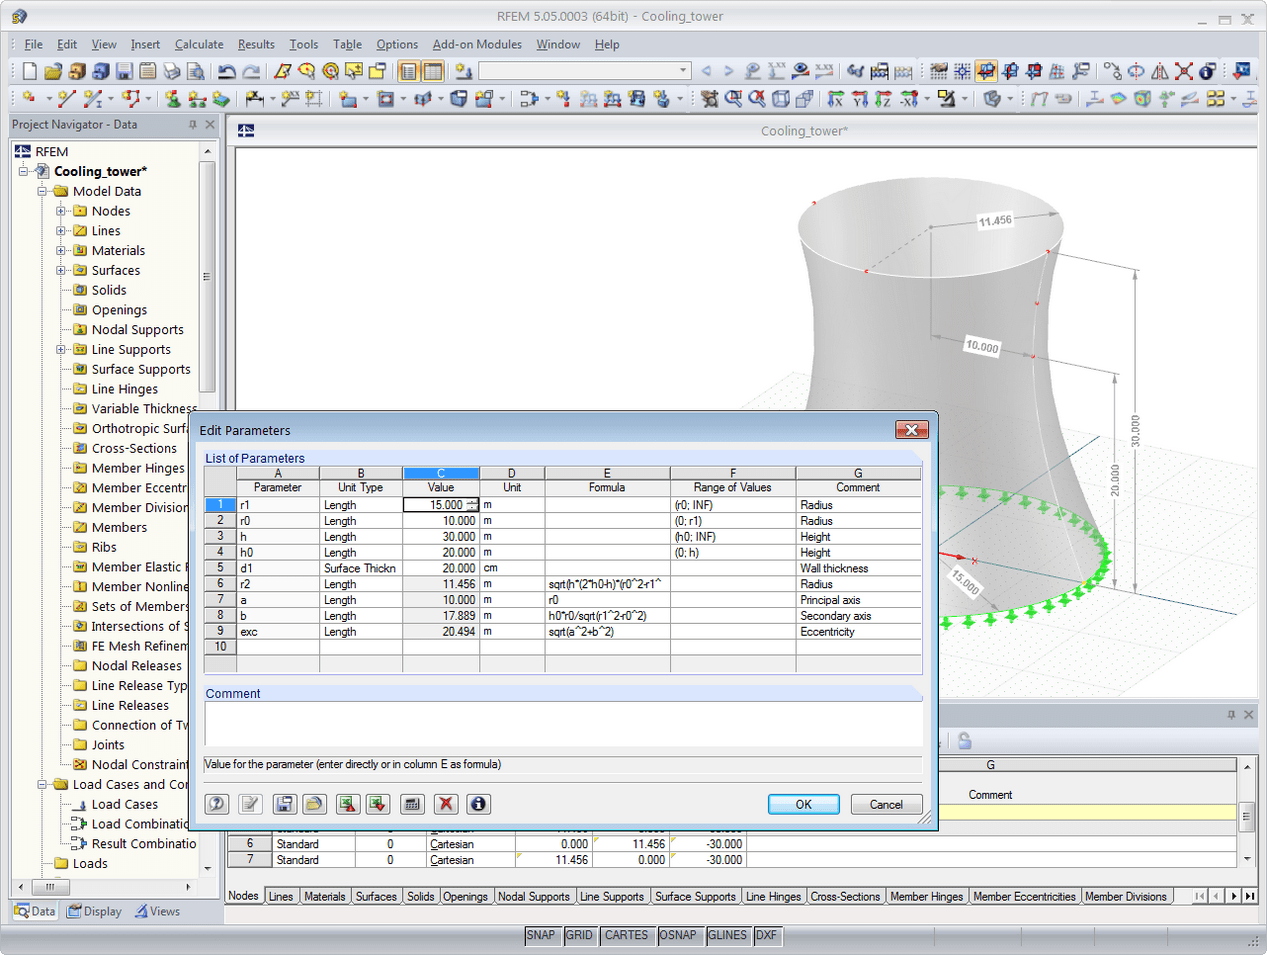 Adaptations of the parameters of a cooling tower in RFEM